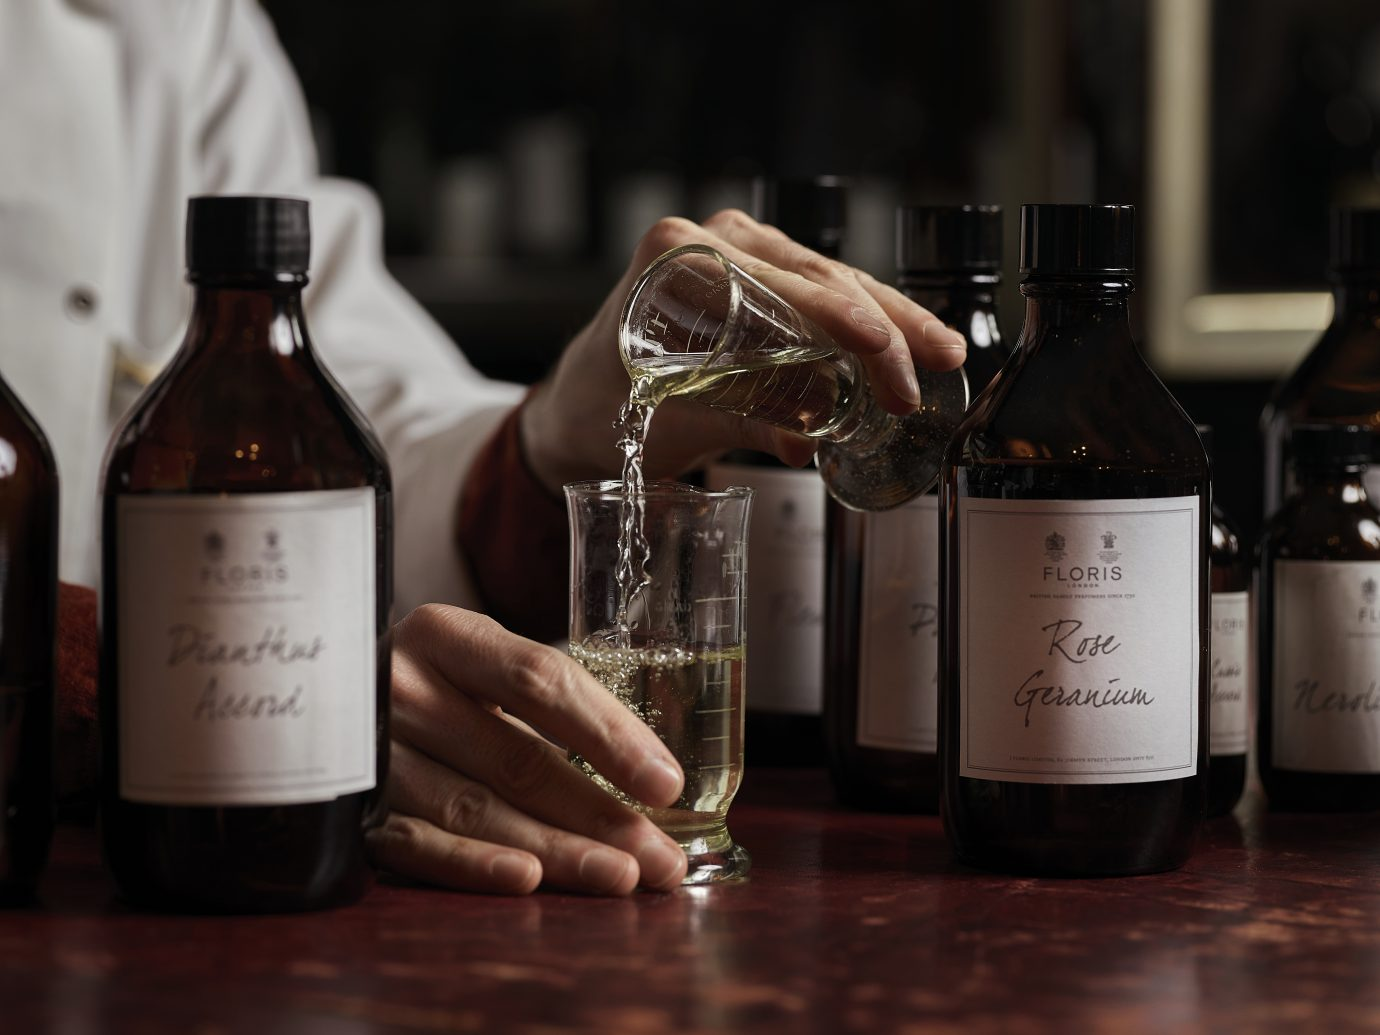 Person mixing fragrances at Floris in London